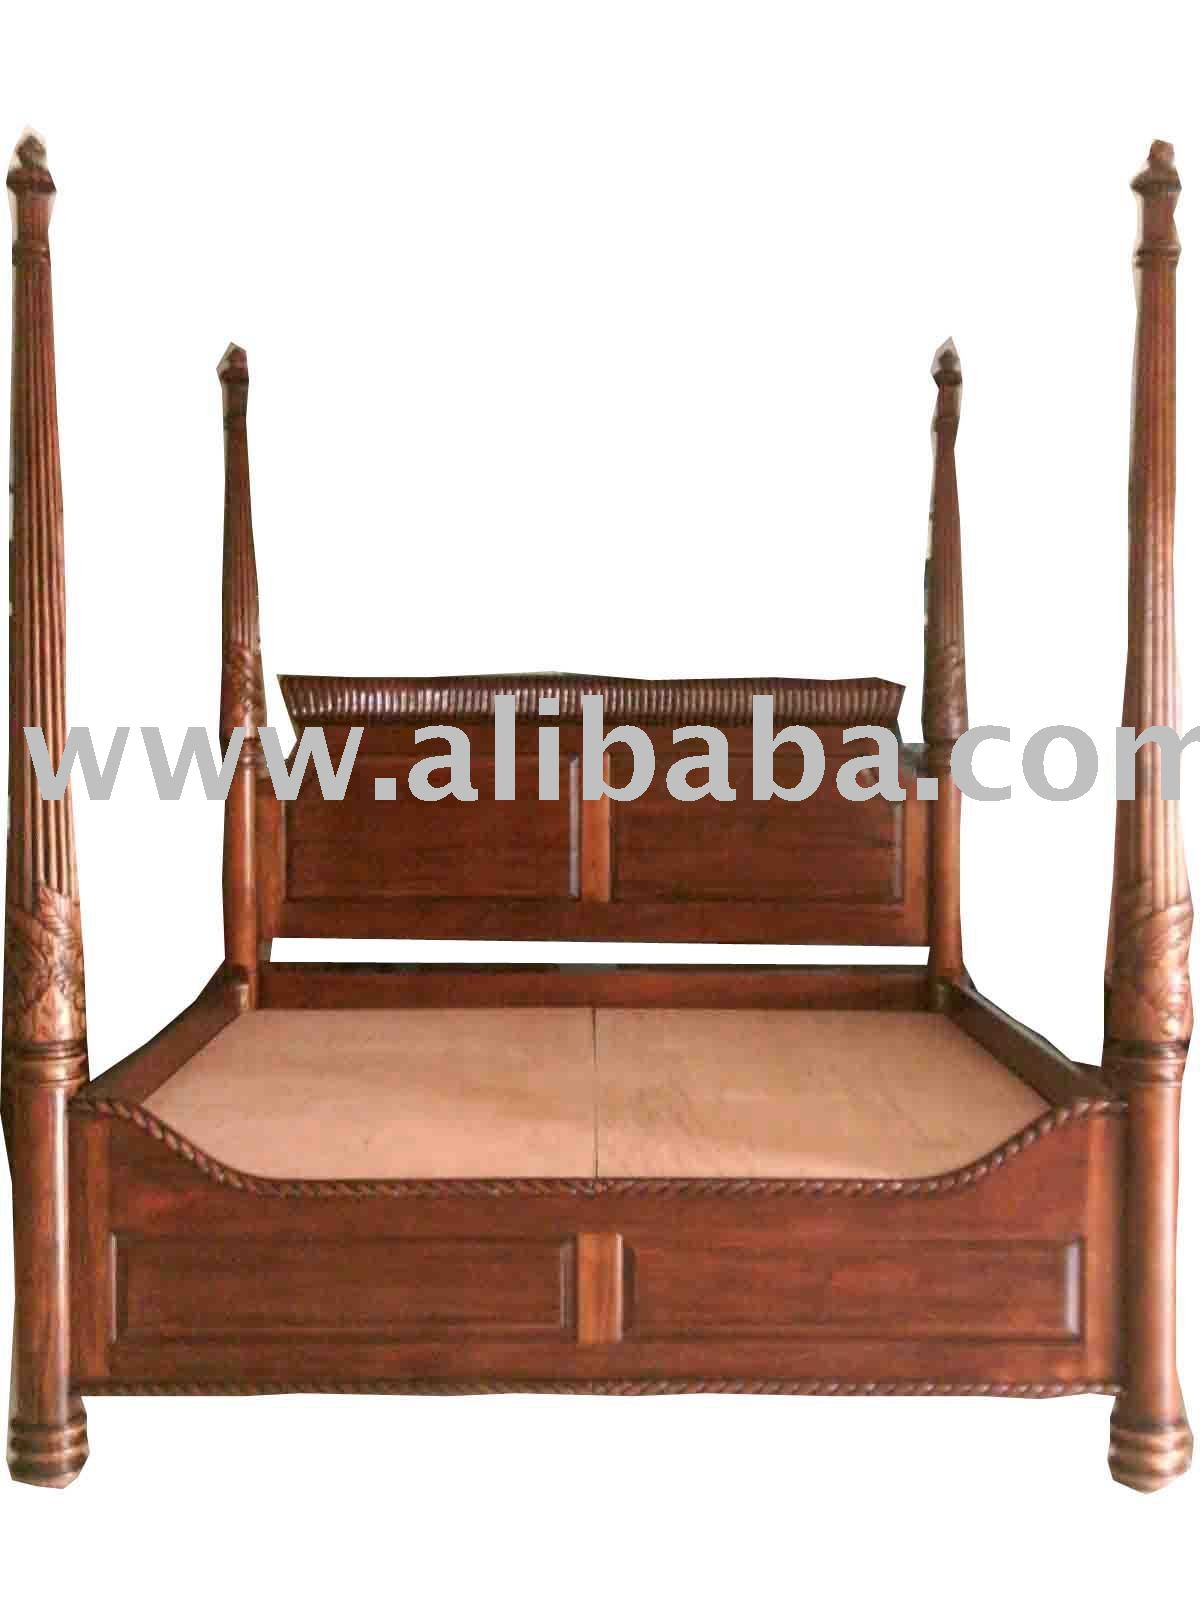 Mahogany Four Poster Beds, Mahogany Four Poster Beds Suppliers and  Manufacturers at Alibaba.com